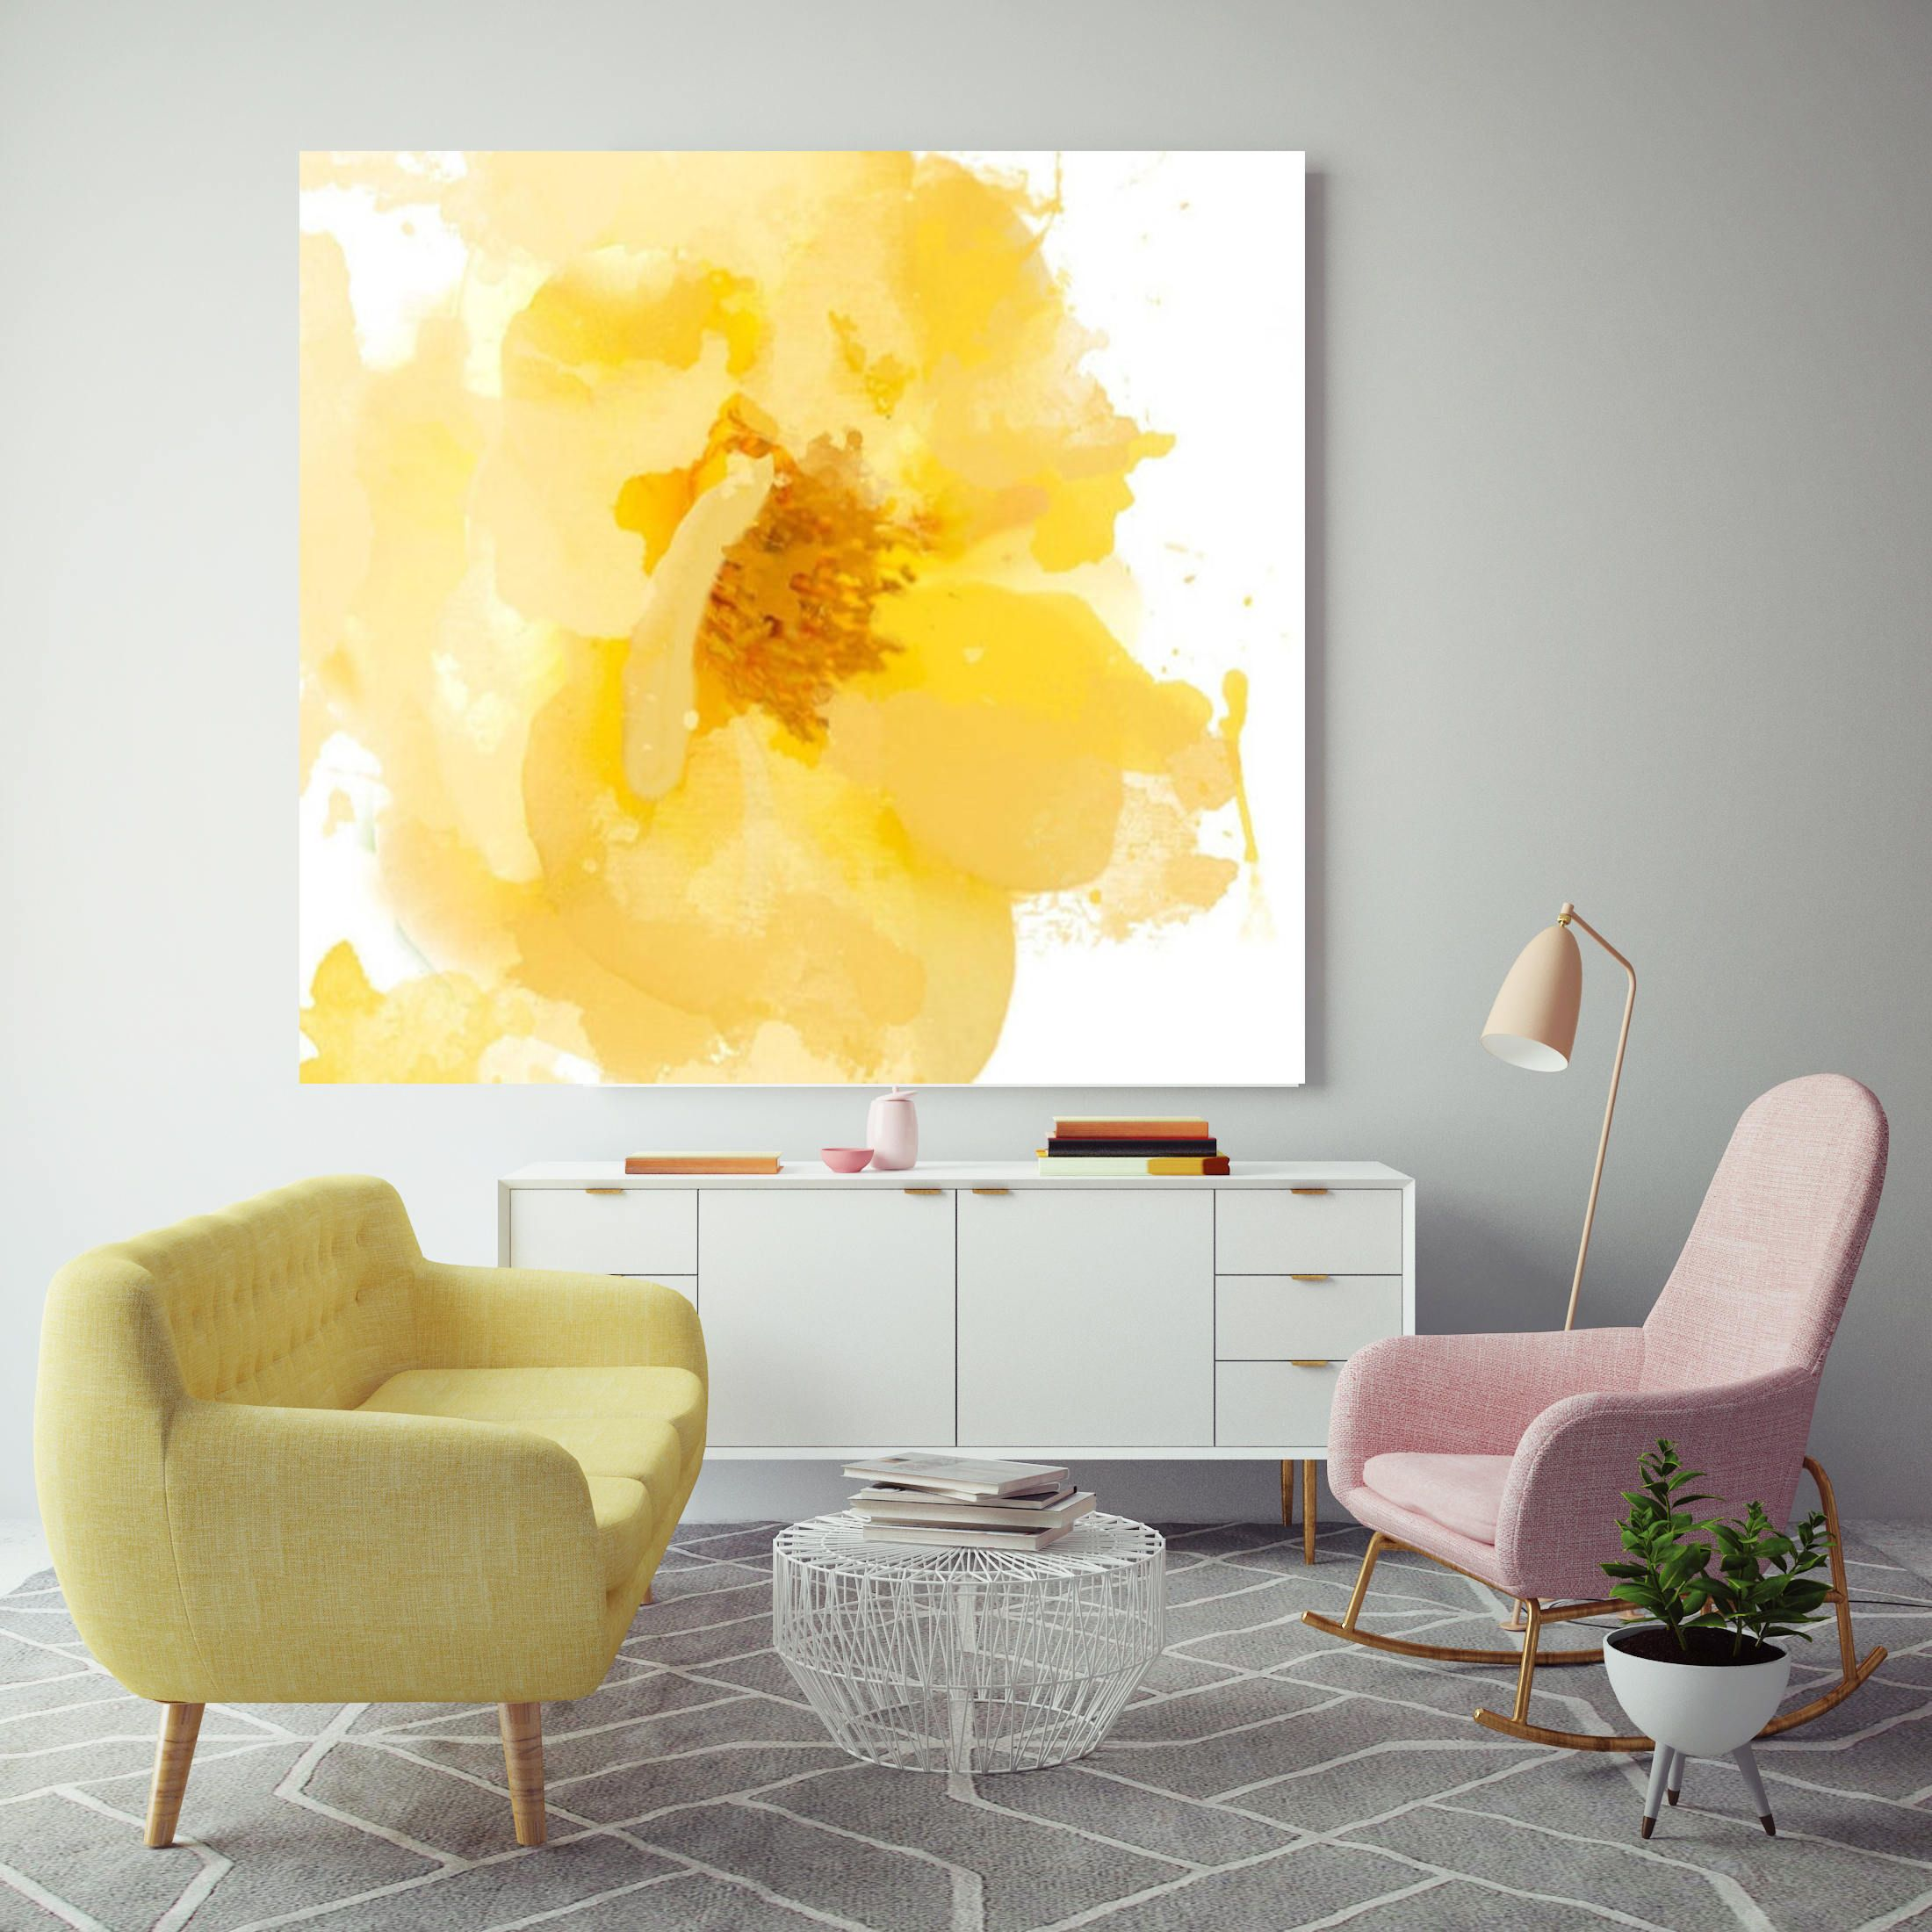 Beautiful And Bright Floral Painting Yellow White Floral Canvas Abstract Colorful Contemporary Canvas Art Print Up To 72 By Irena Orlov In 2020 Contemporary Art Canvas Pink Abstract Art Abstract Floral Paintings